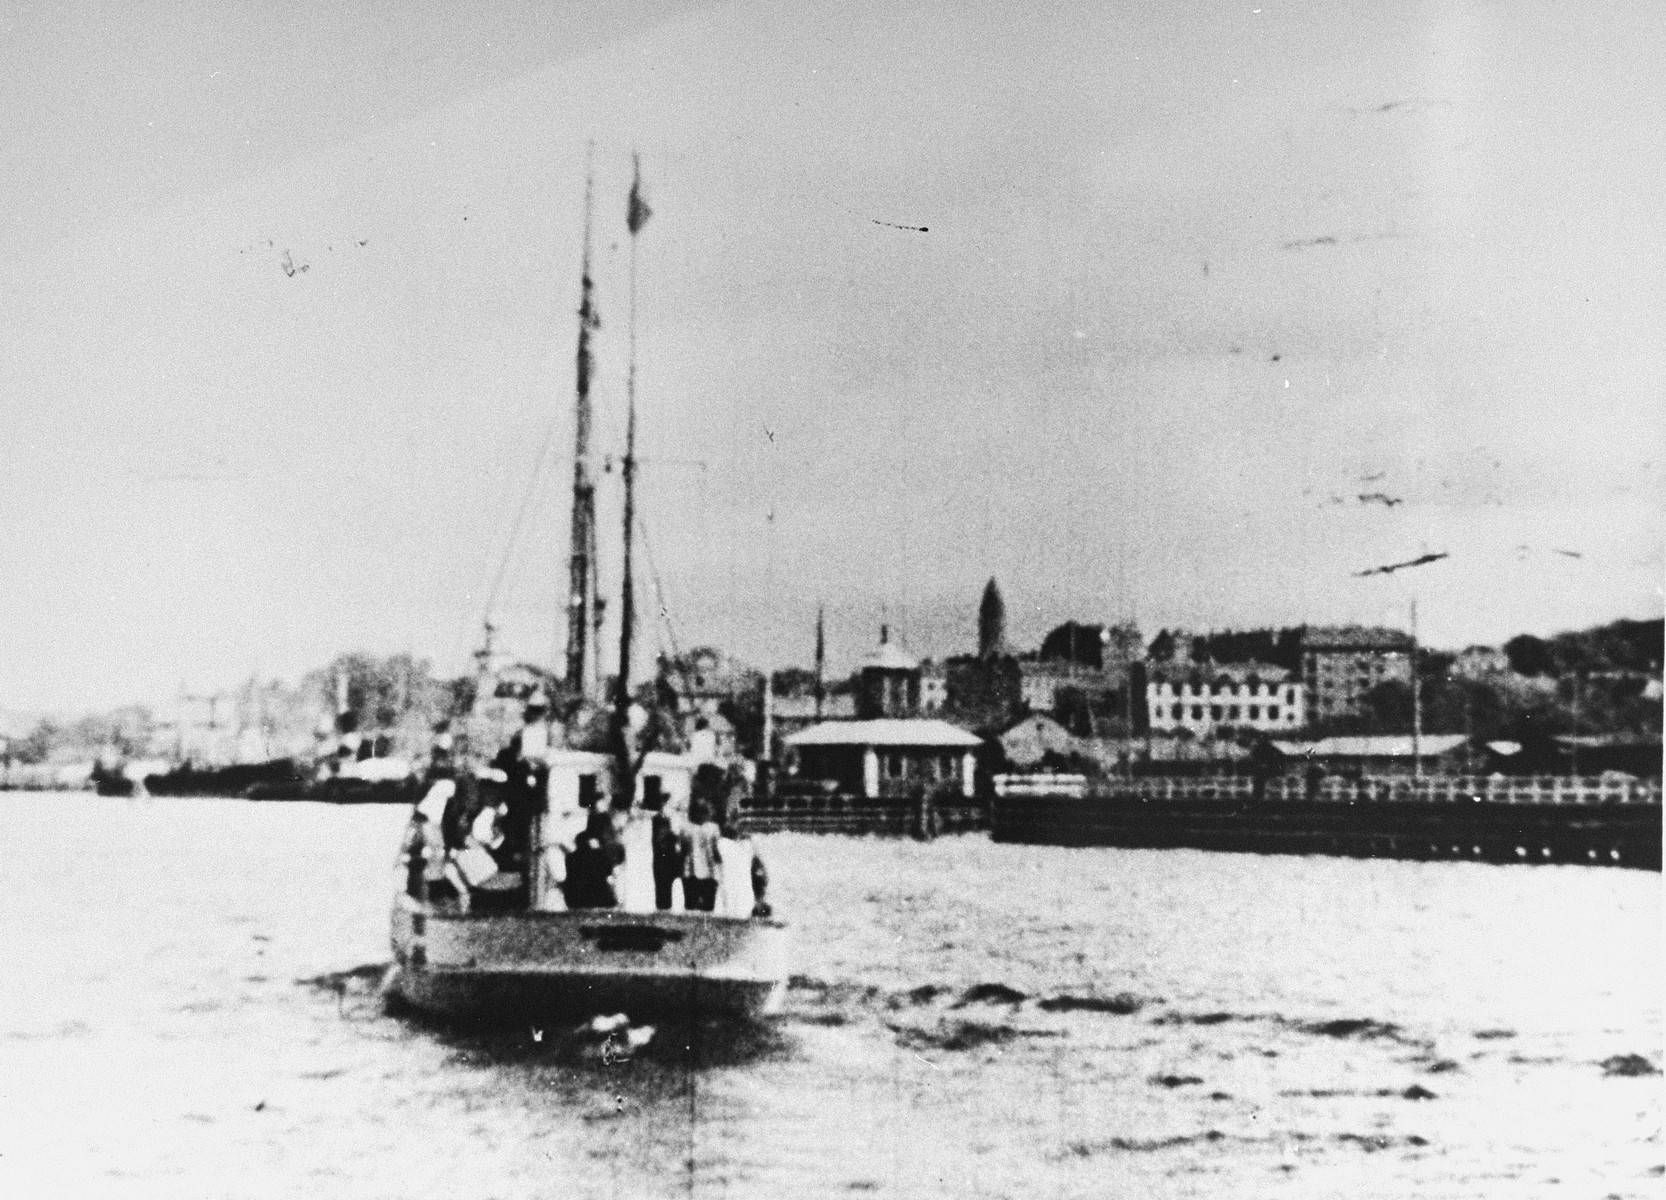 Jews on a rescue boat bound for Sweden.